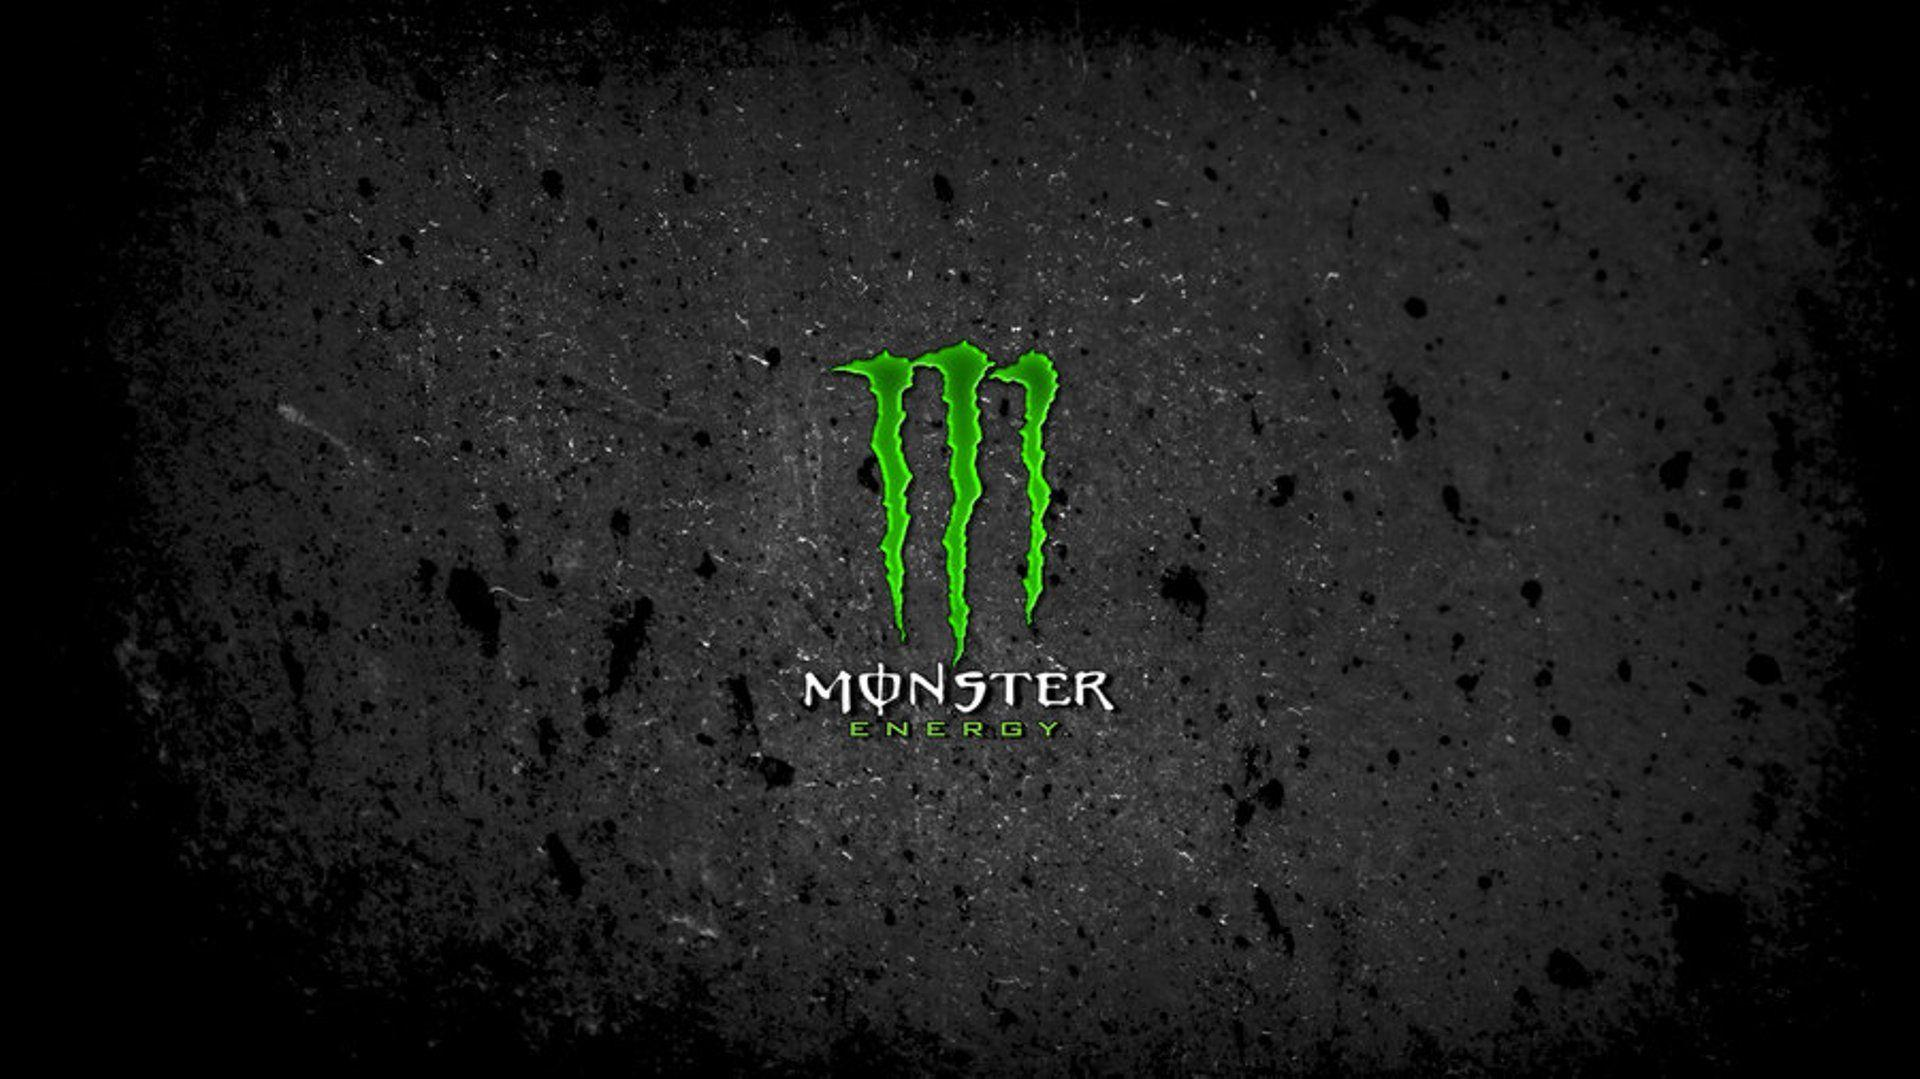 Monster Hd Wallpapers For Mobile Wallpaper Cave